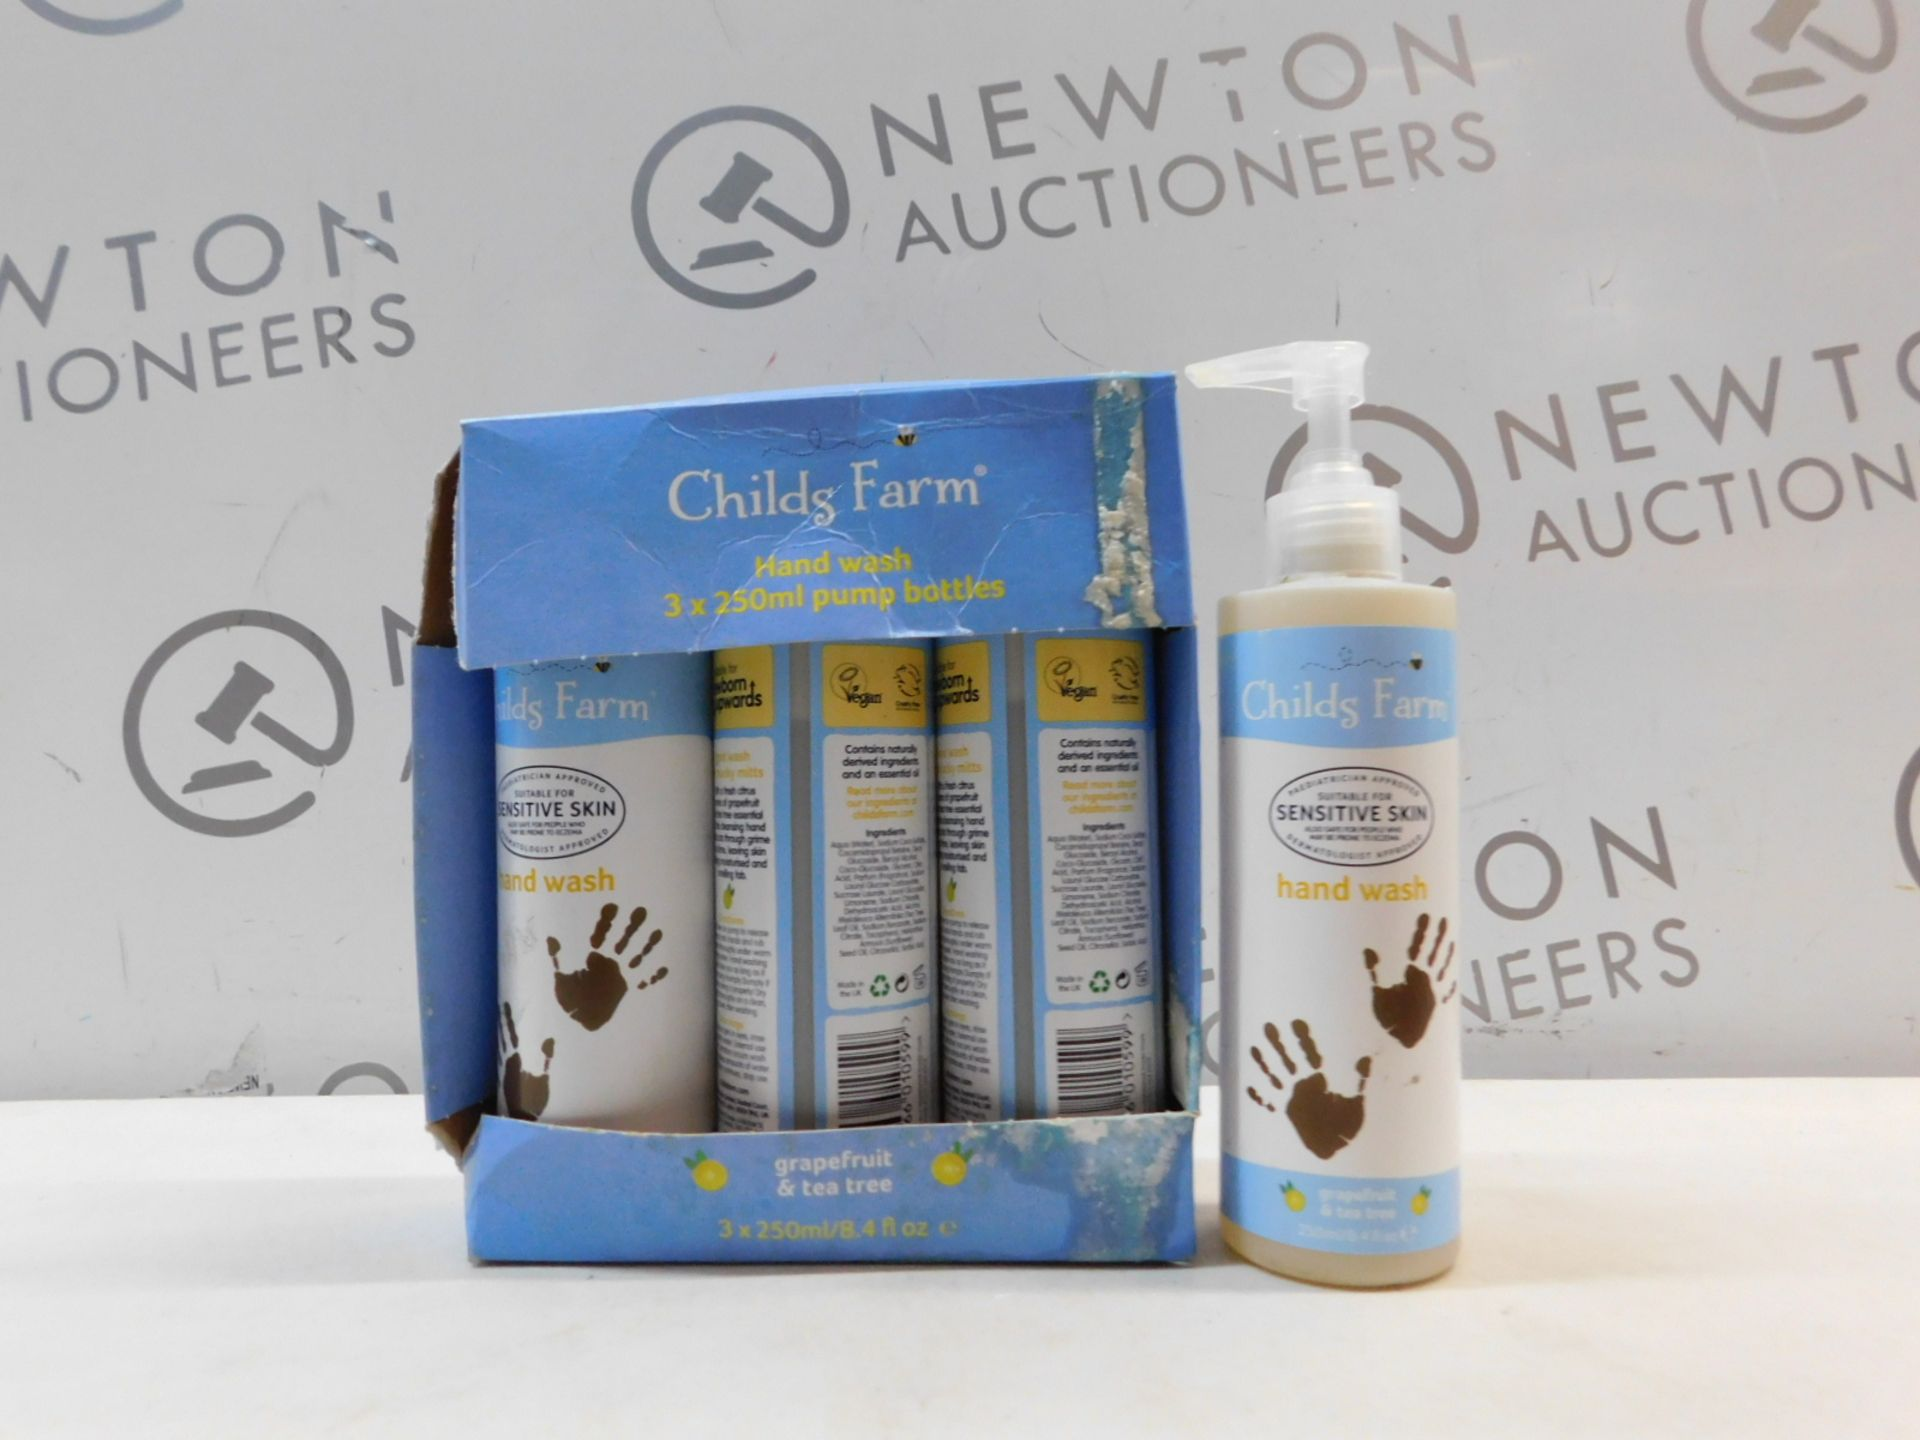 1 BOXED SET OF 3+1 CHILDS FARMING HAND WASH RRP £14.99